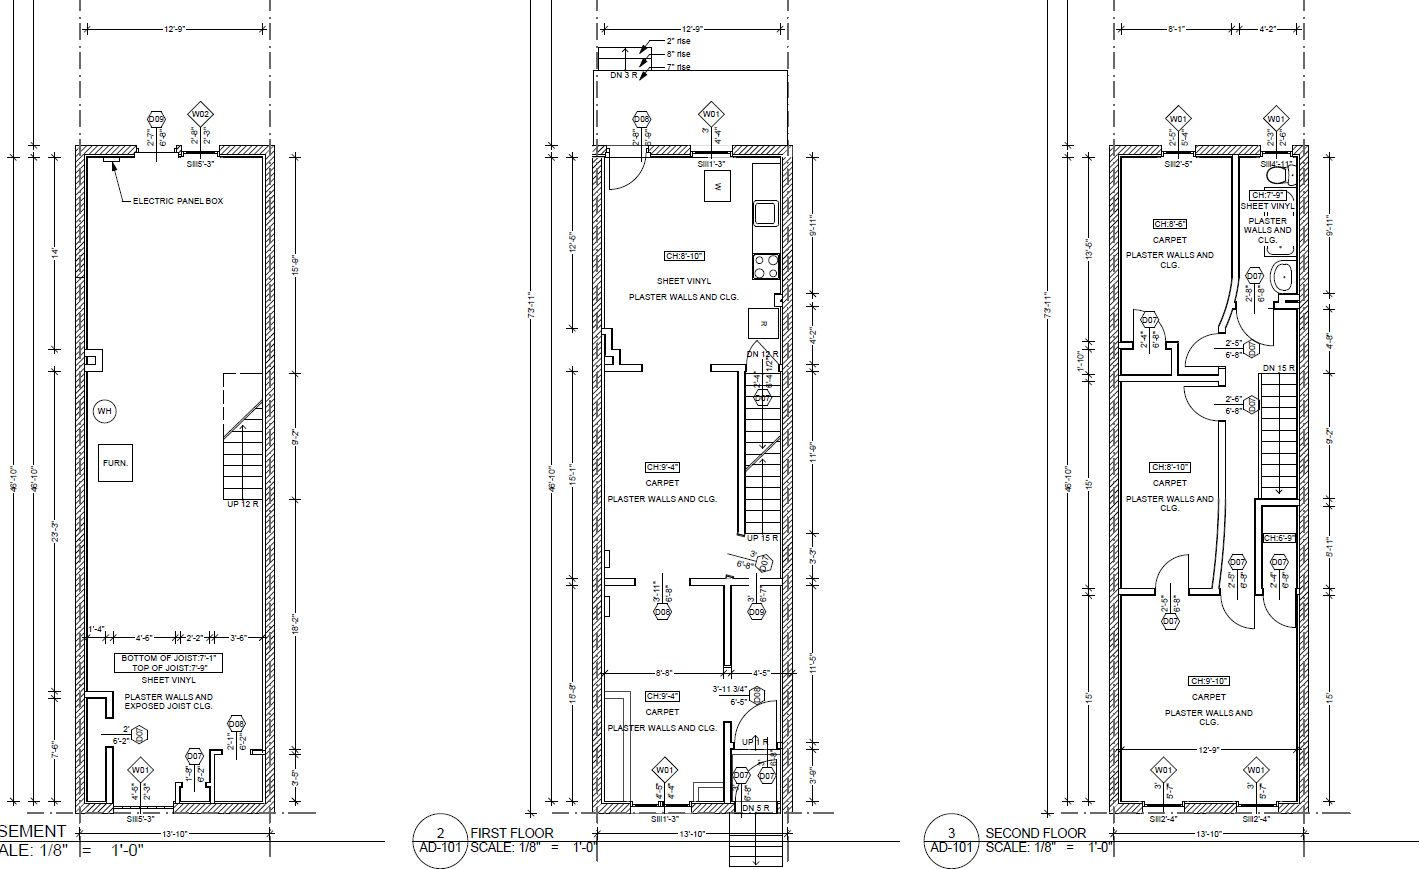 Twostory 1420 869 narrow house plans for Apartment home plans for narrow lots